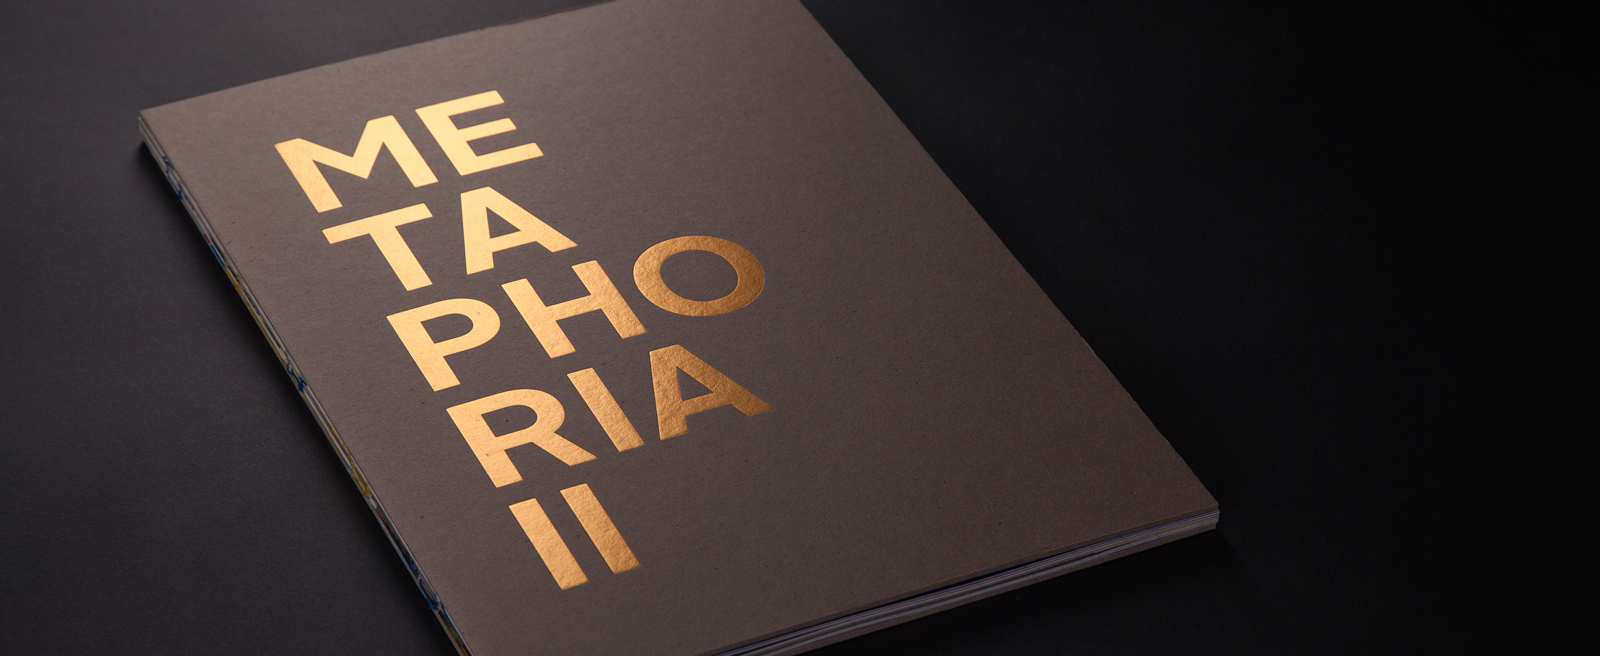 Metaphoria II, visiting the exhibition through a catalog